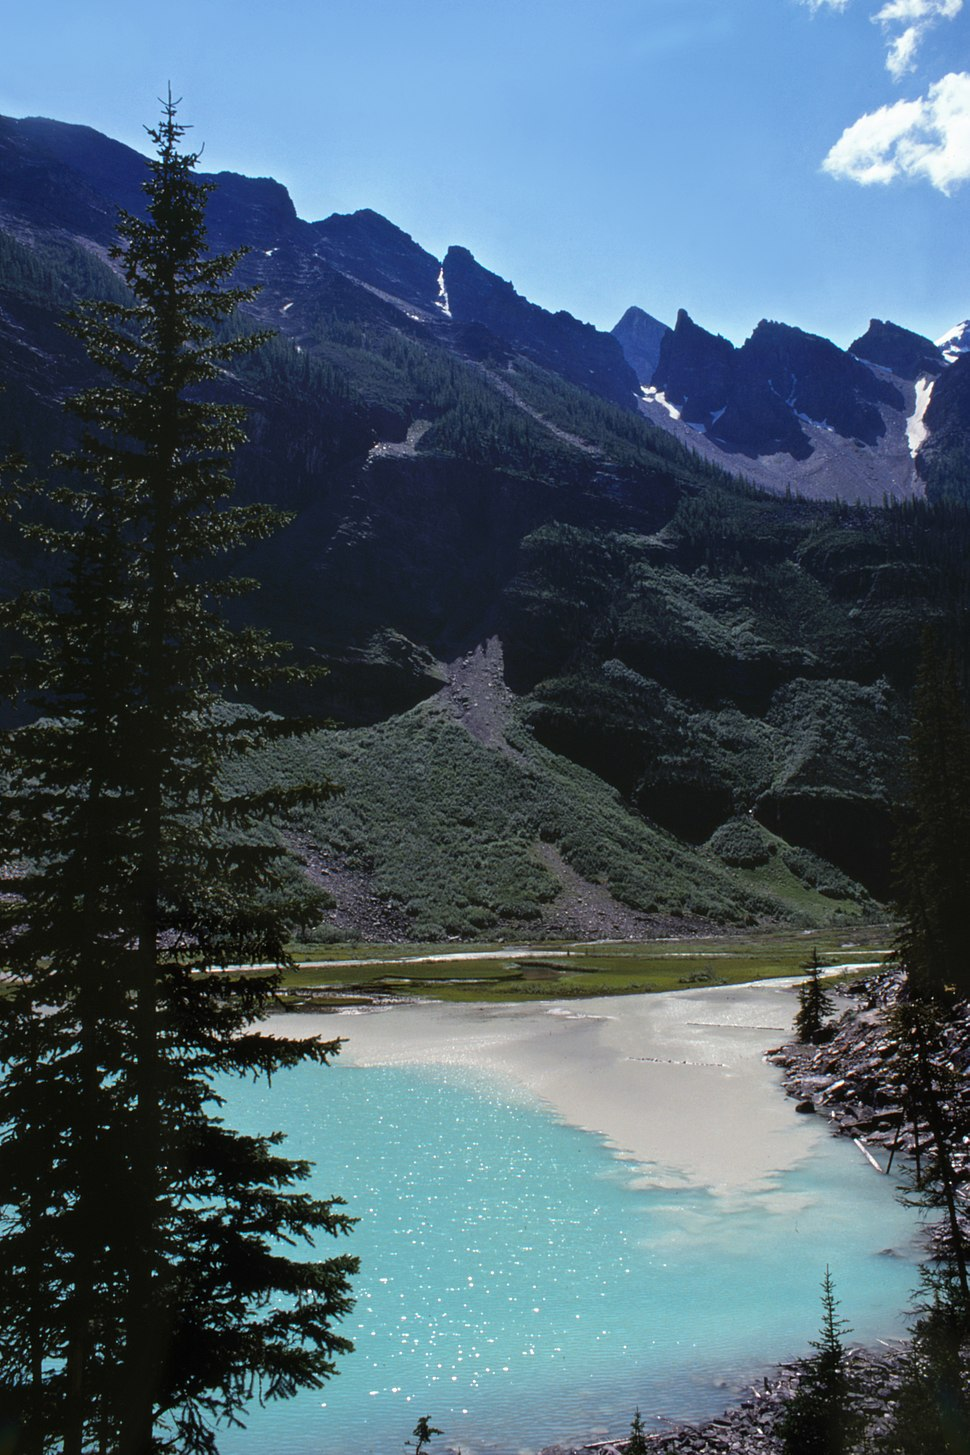 Rock flour from glacial melt enters headwaters at Lake Louise